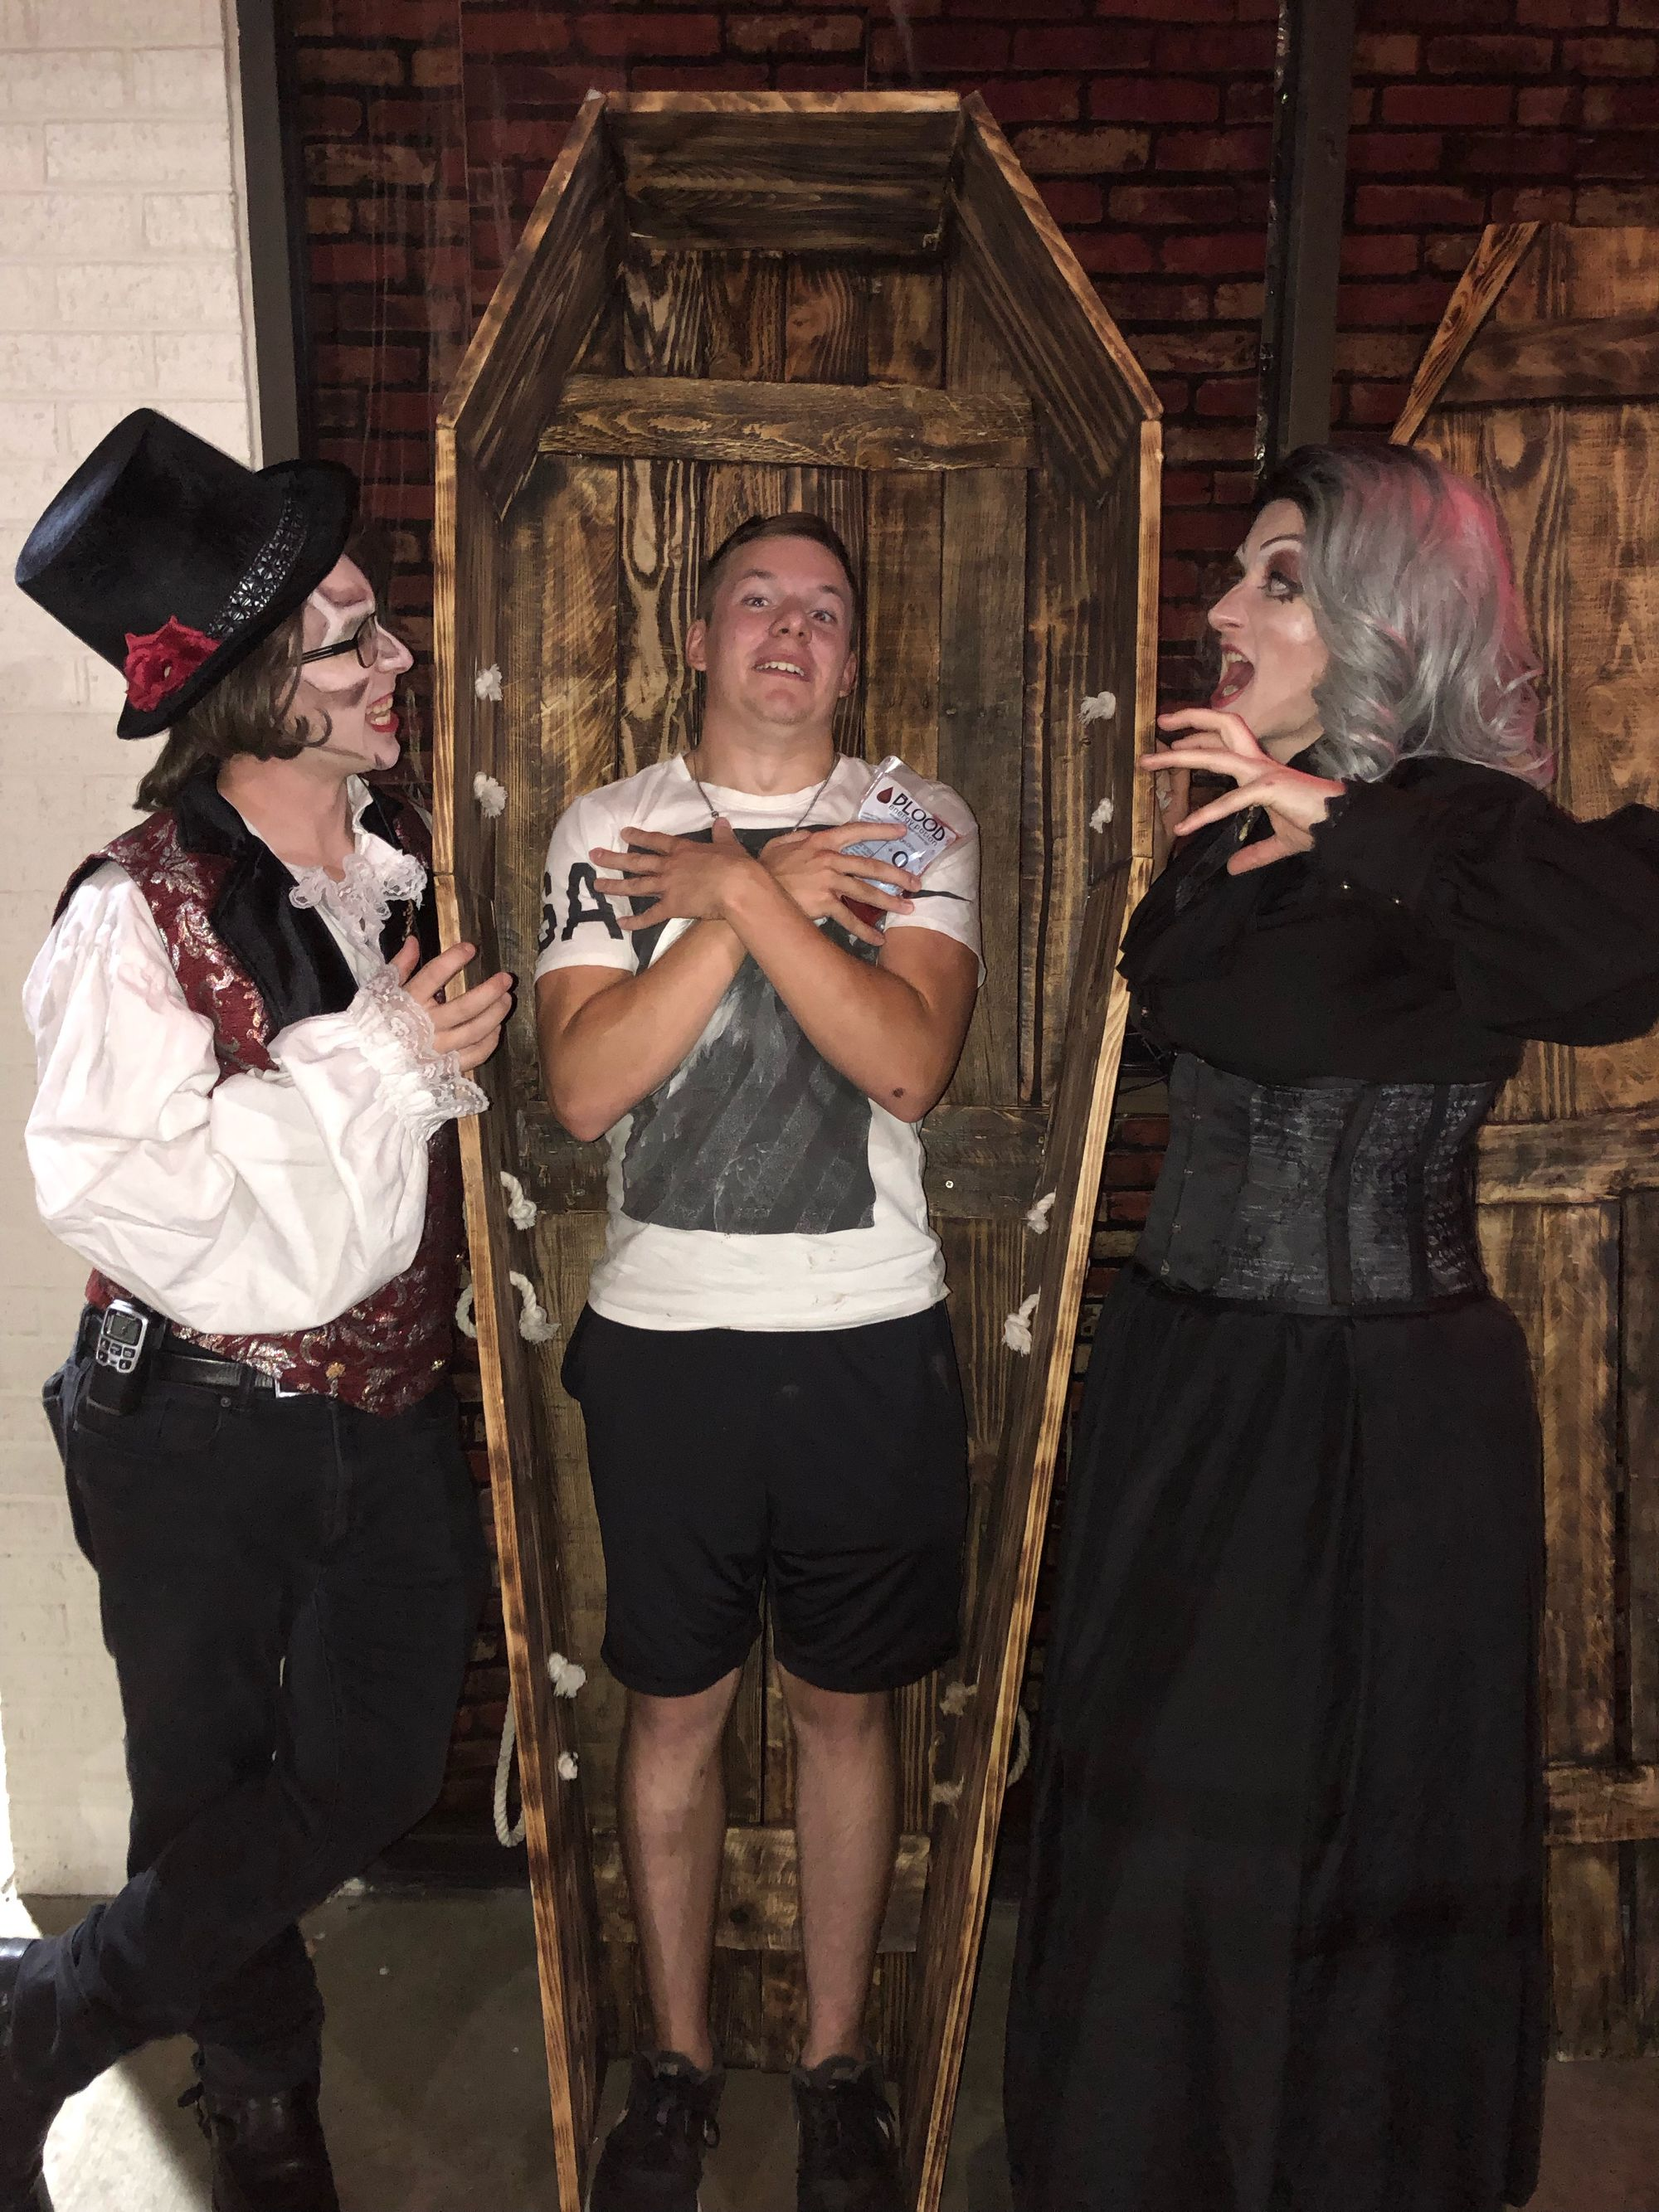 Visit Dracula's Castle at the local 'spookeasy' through October